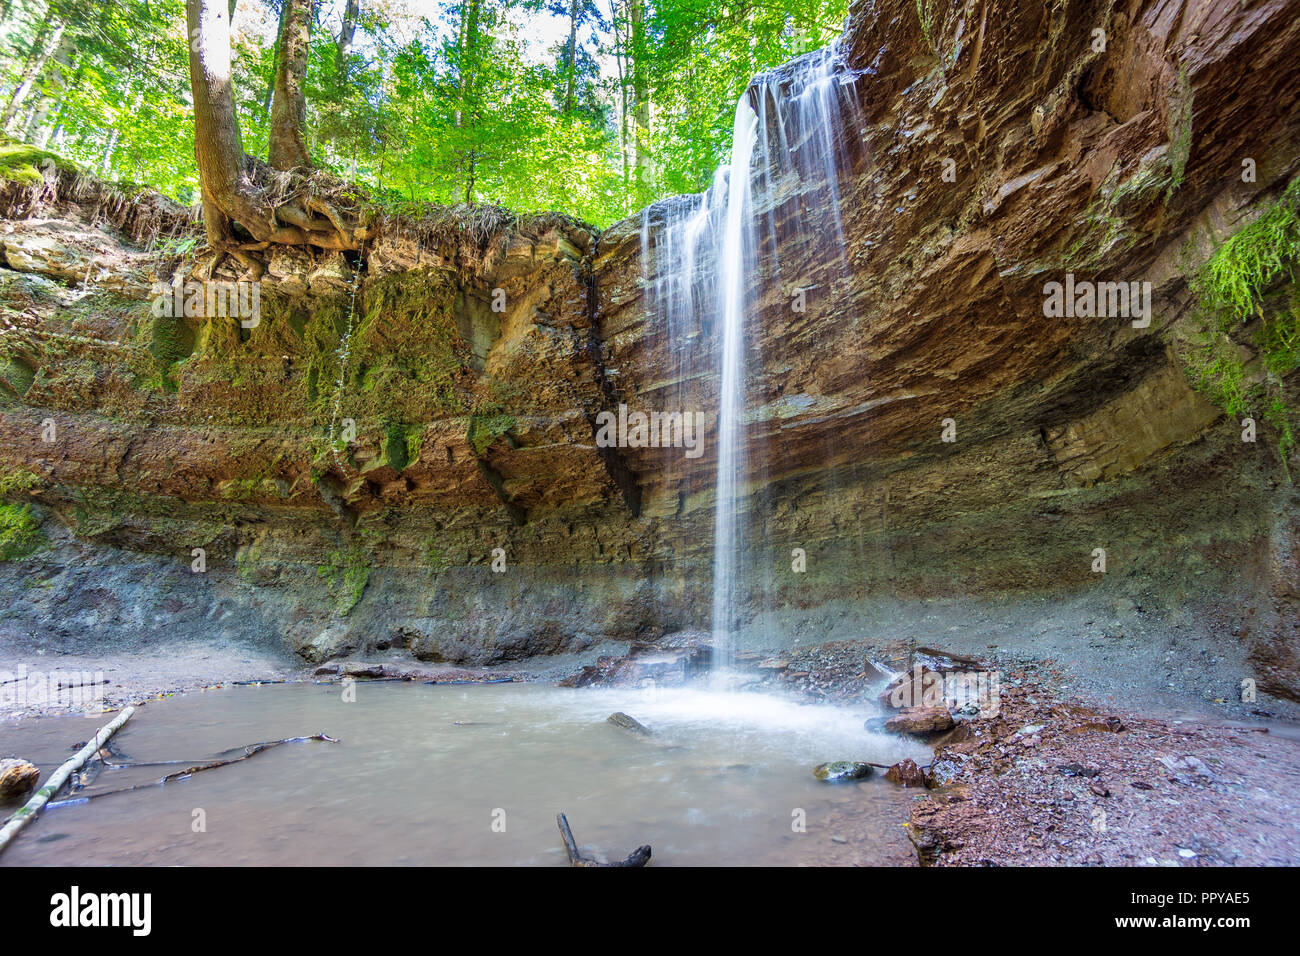 Germany, Hoerschbach waterfall in green forest - Stock Image